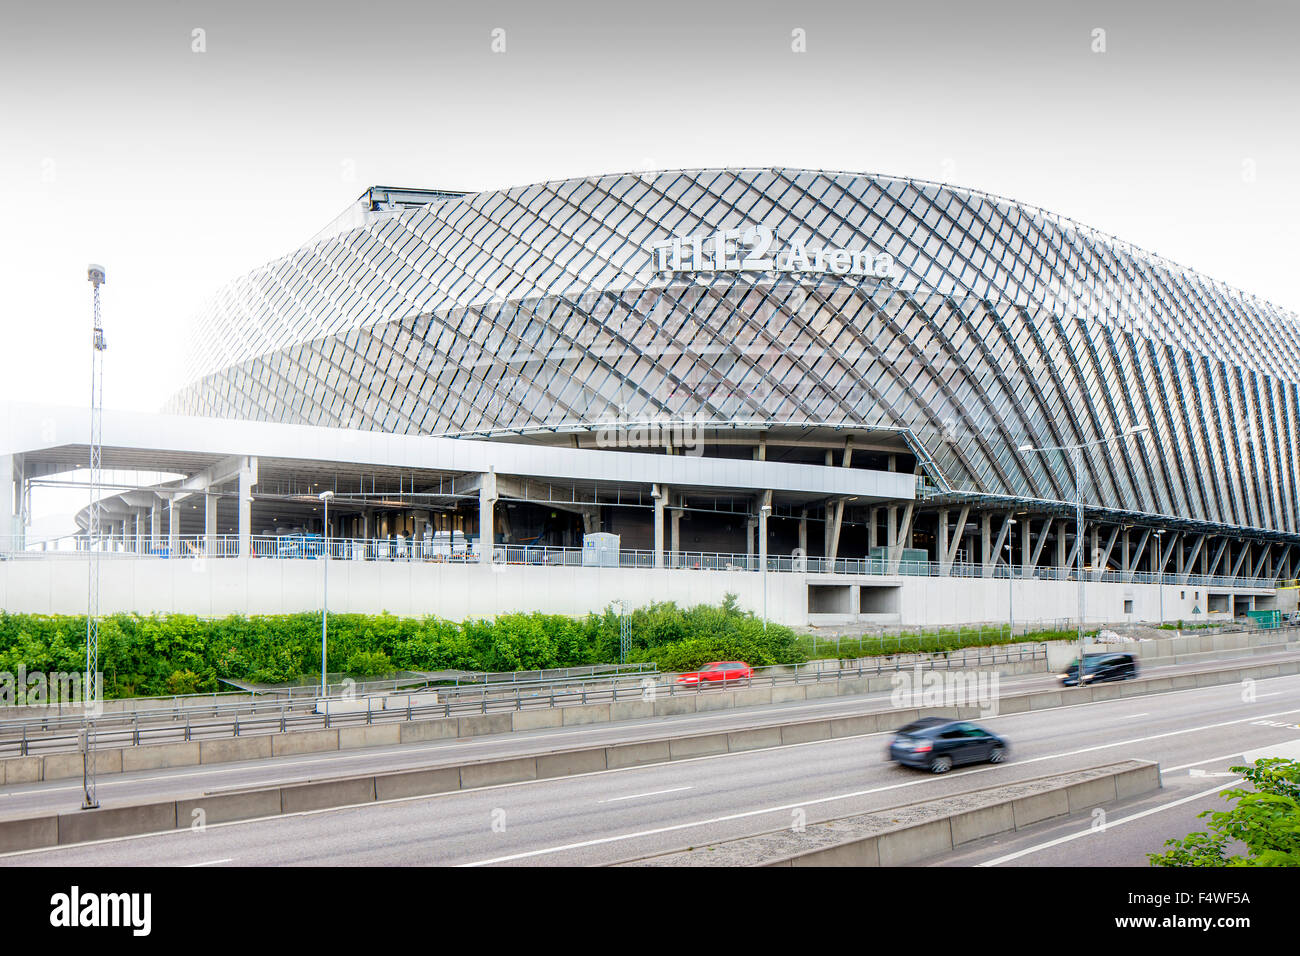 Sweden, Stockholm, View of Tele 2 Arena - Stock Image